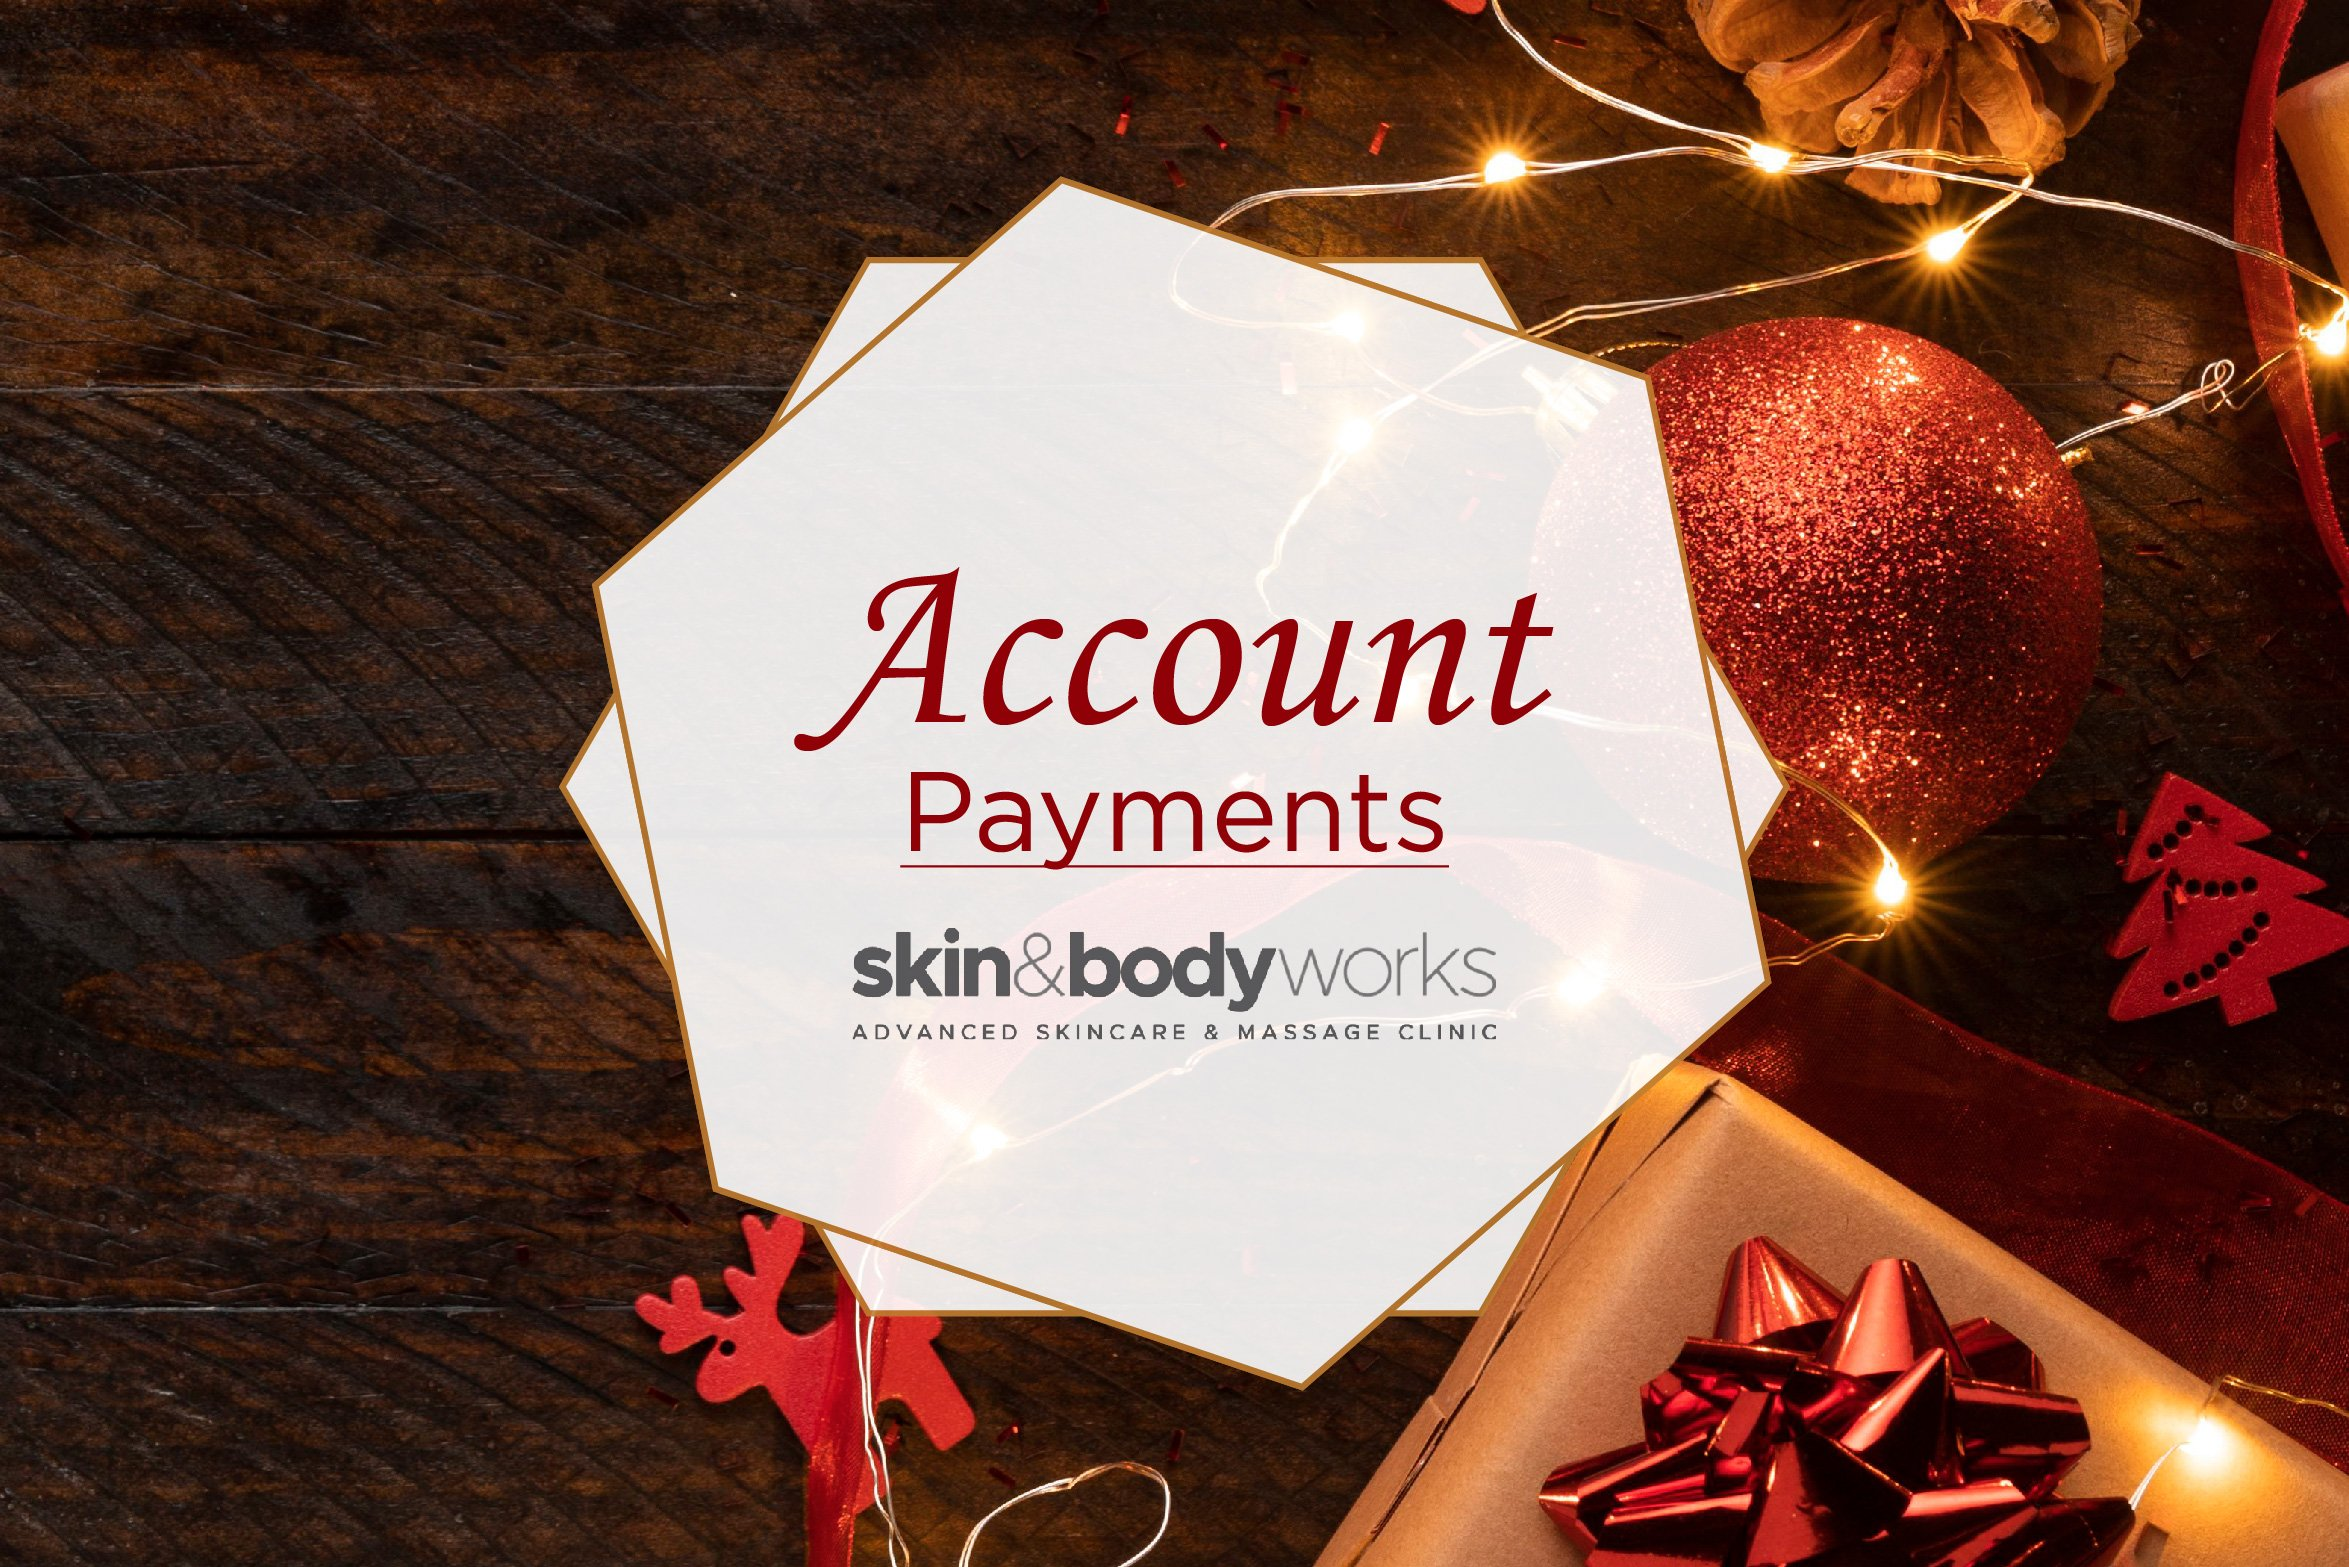 Pay for Products & Treatments in Advance